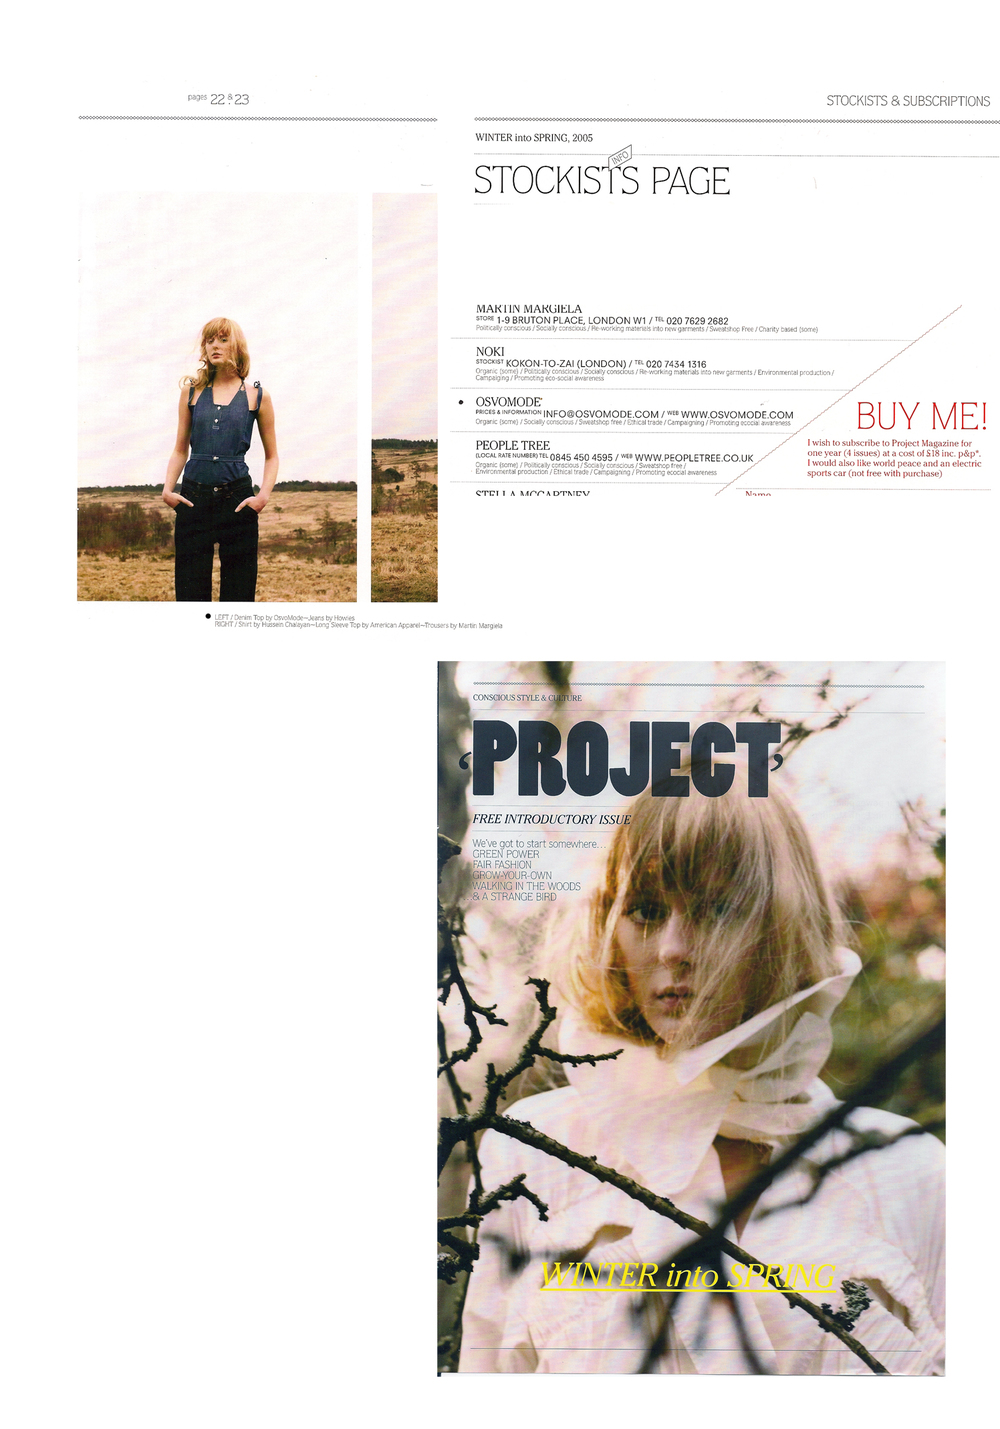 Press-Project-magazine-on-Thomas-Voorn.jpg